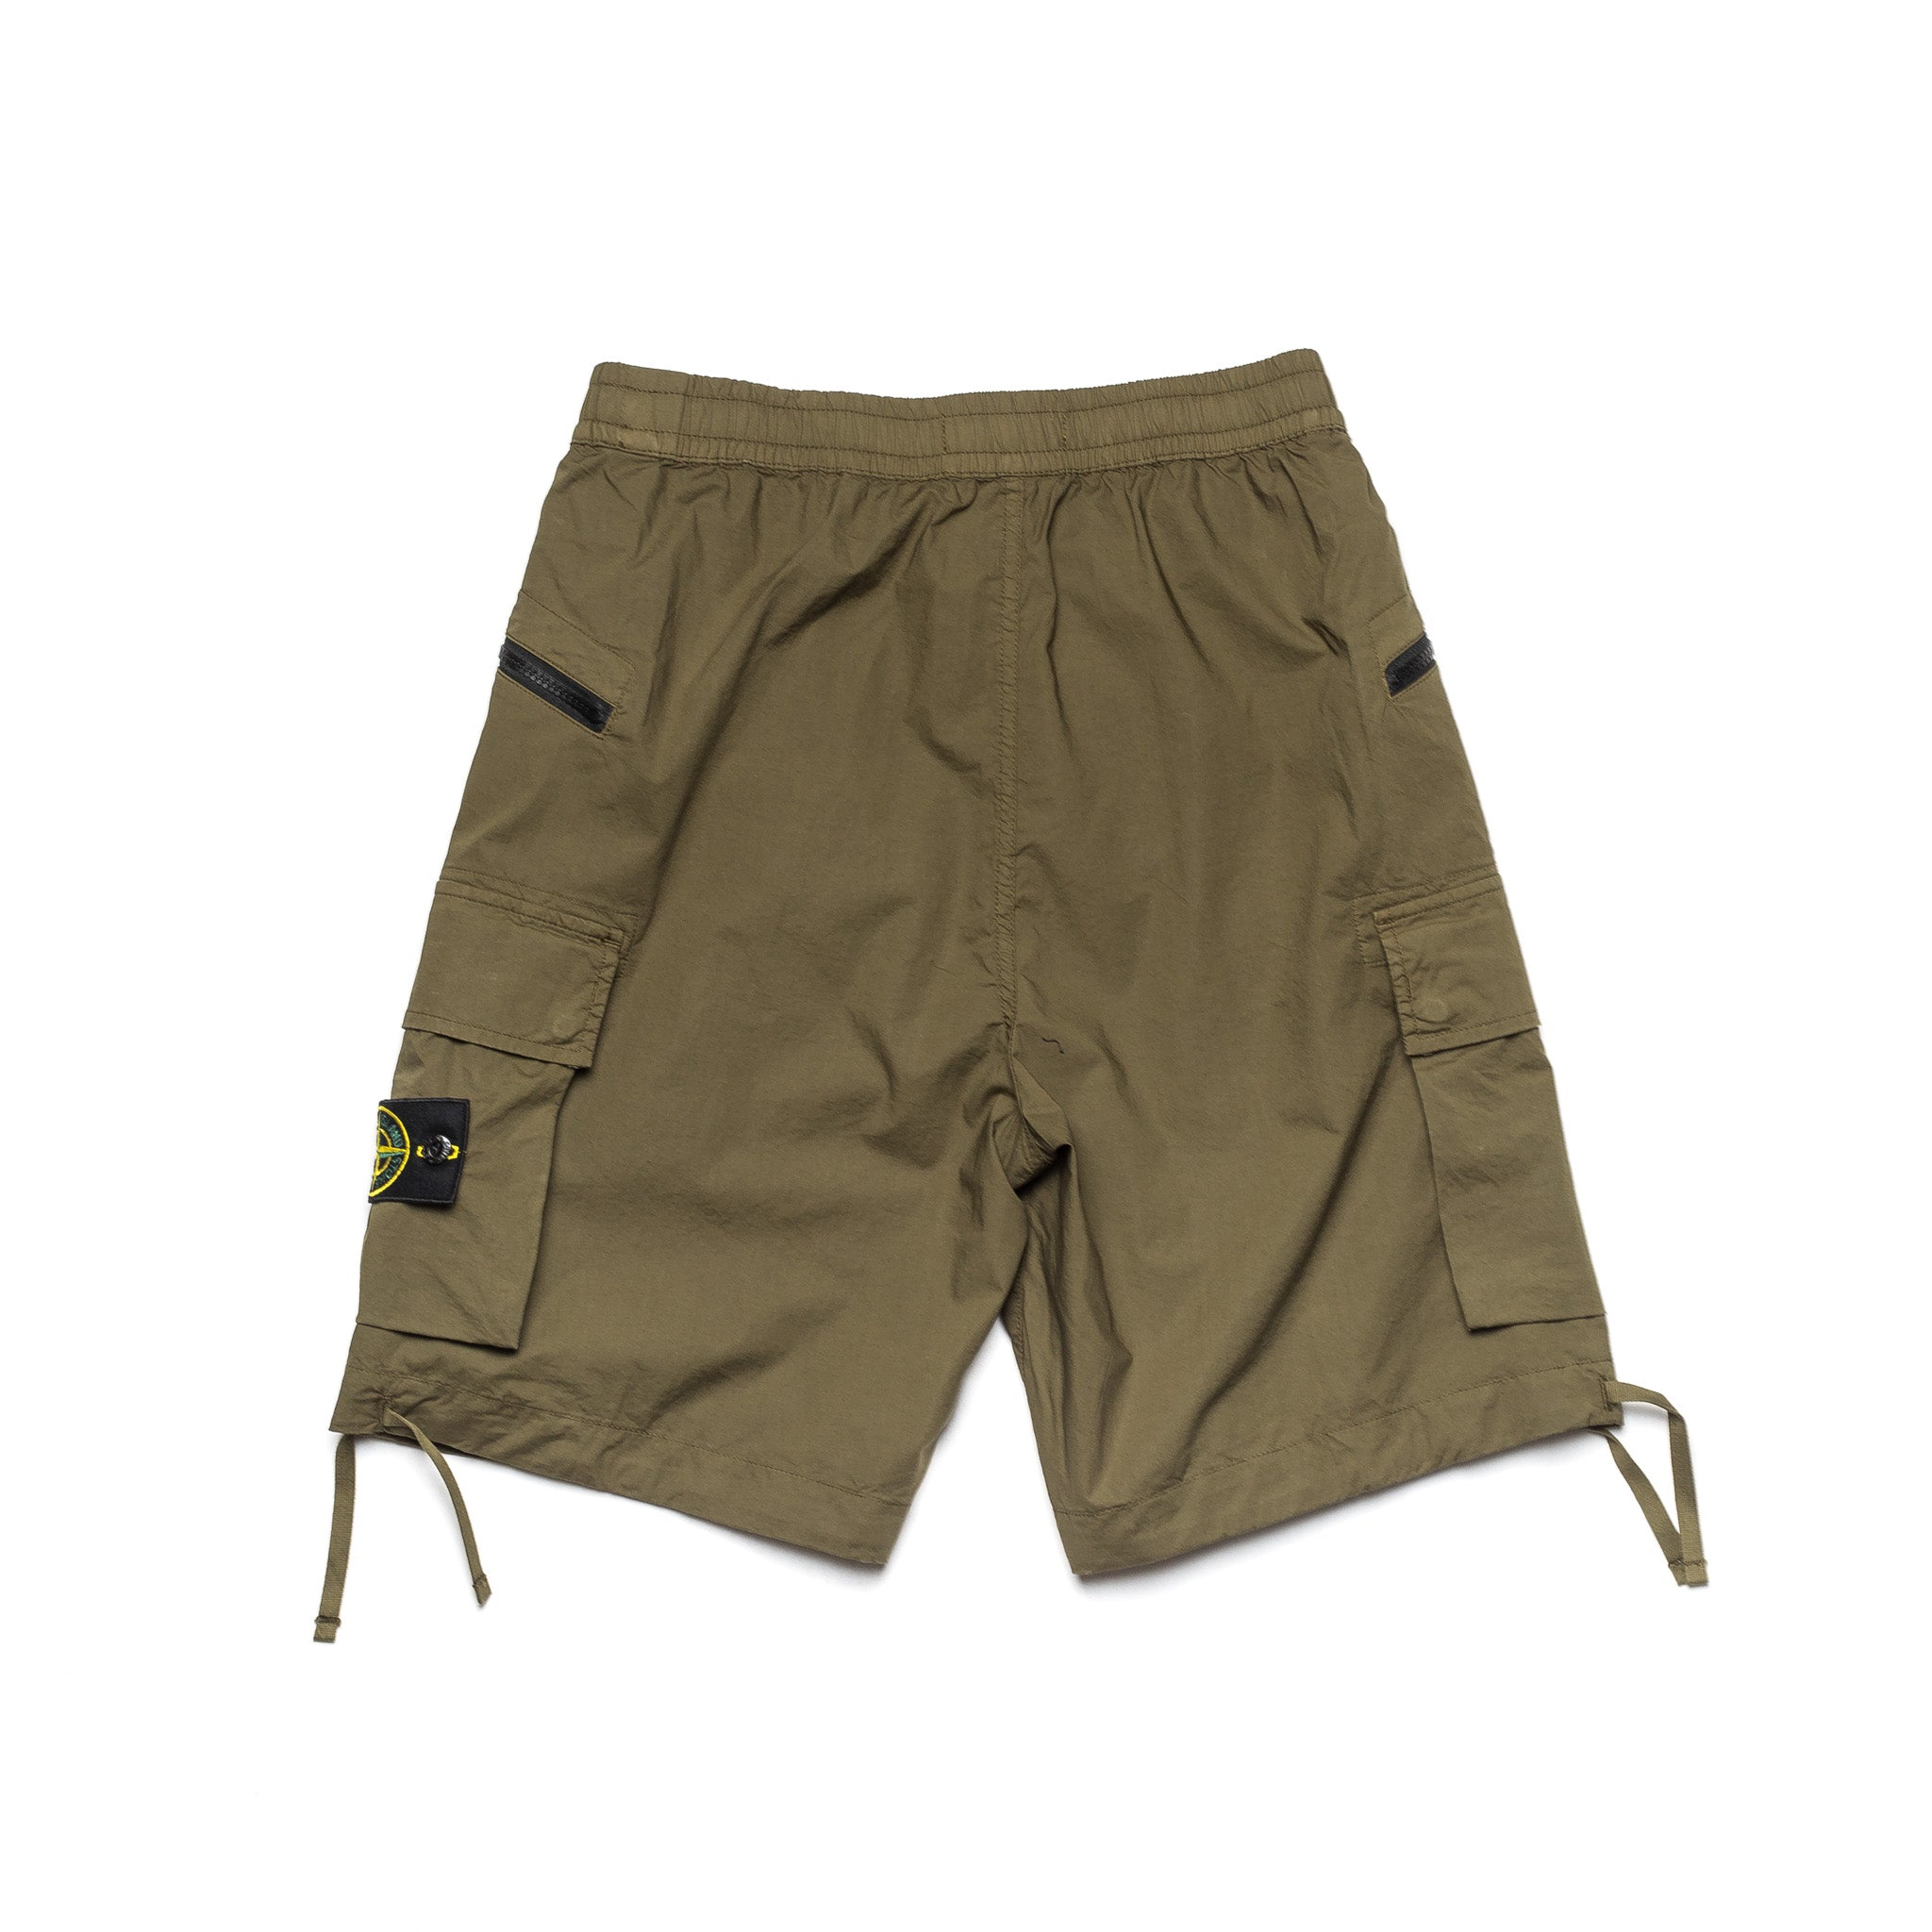 Four Pocket Shorts 7415L0403 Olive